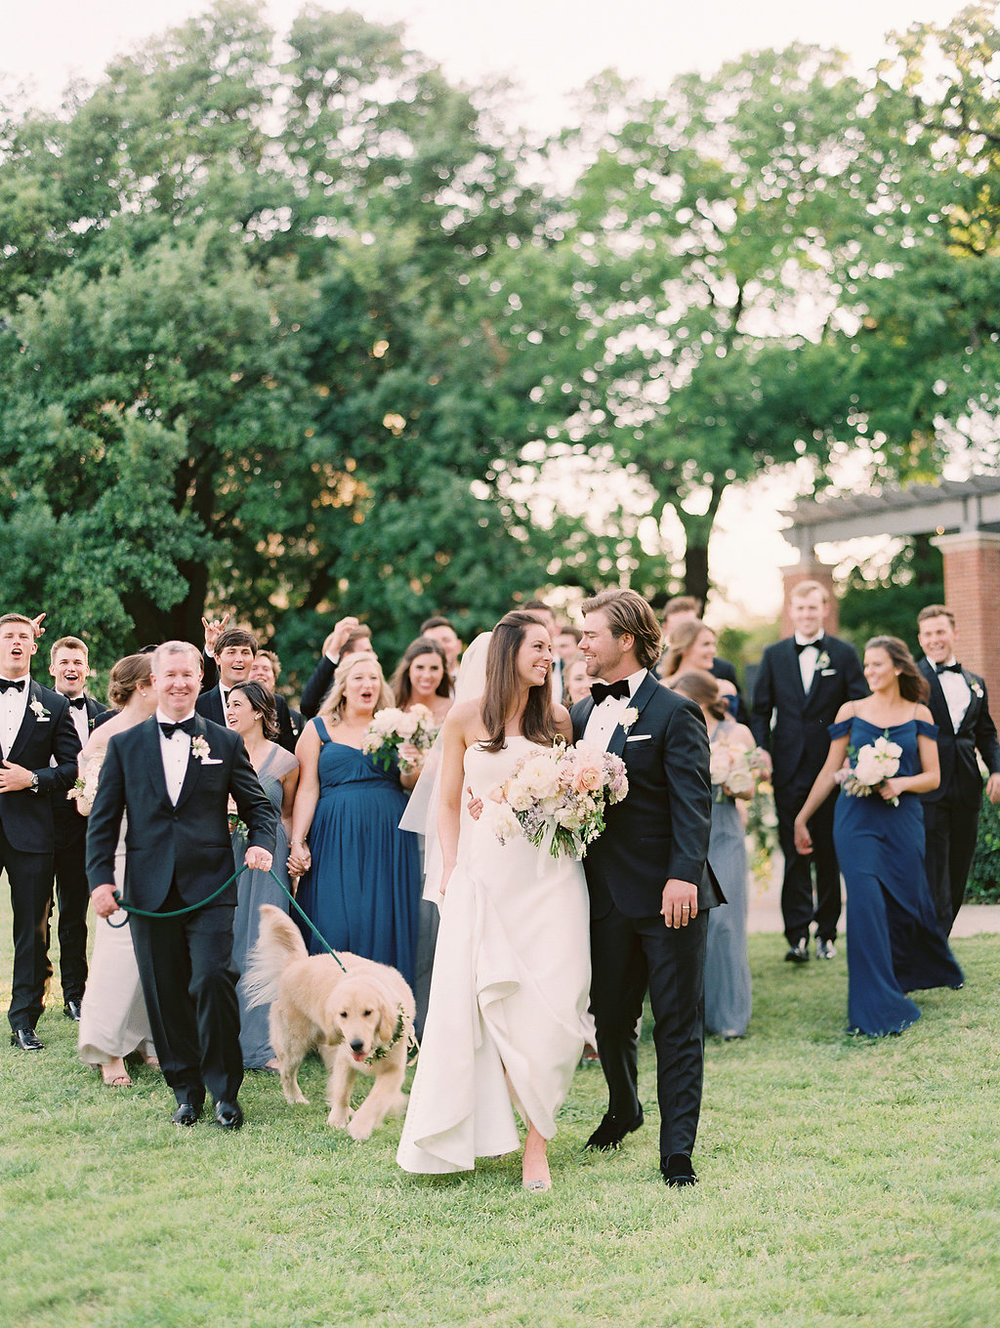 Southern elegant wedding featured in   Style Me Pretty